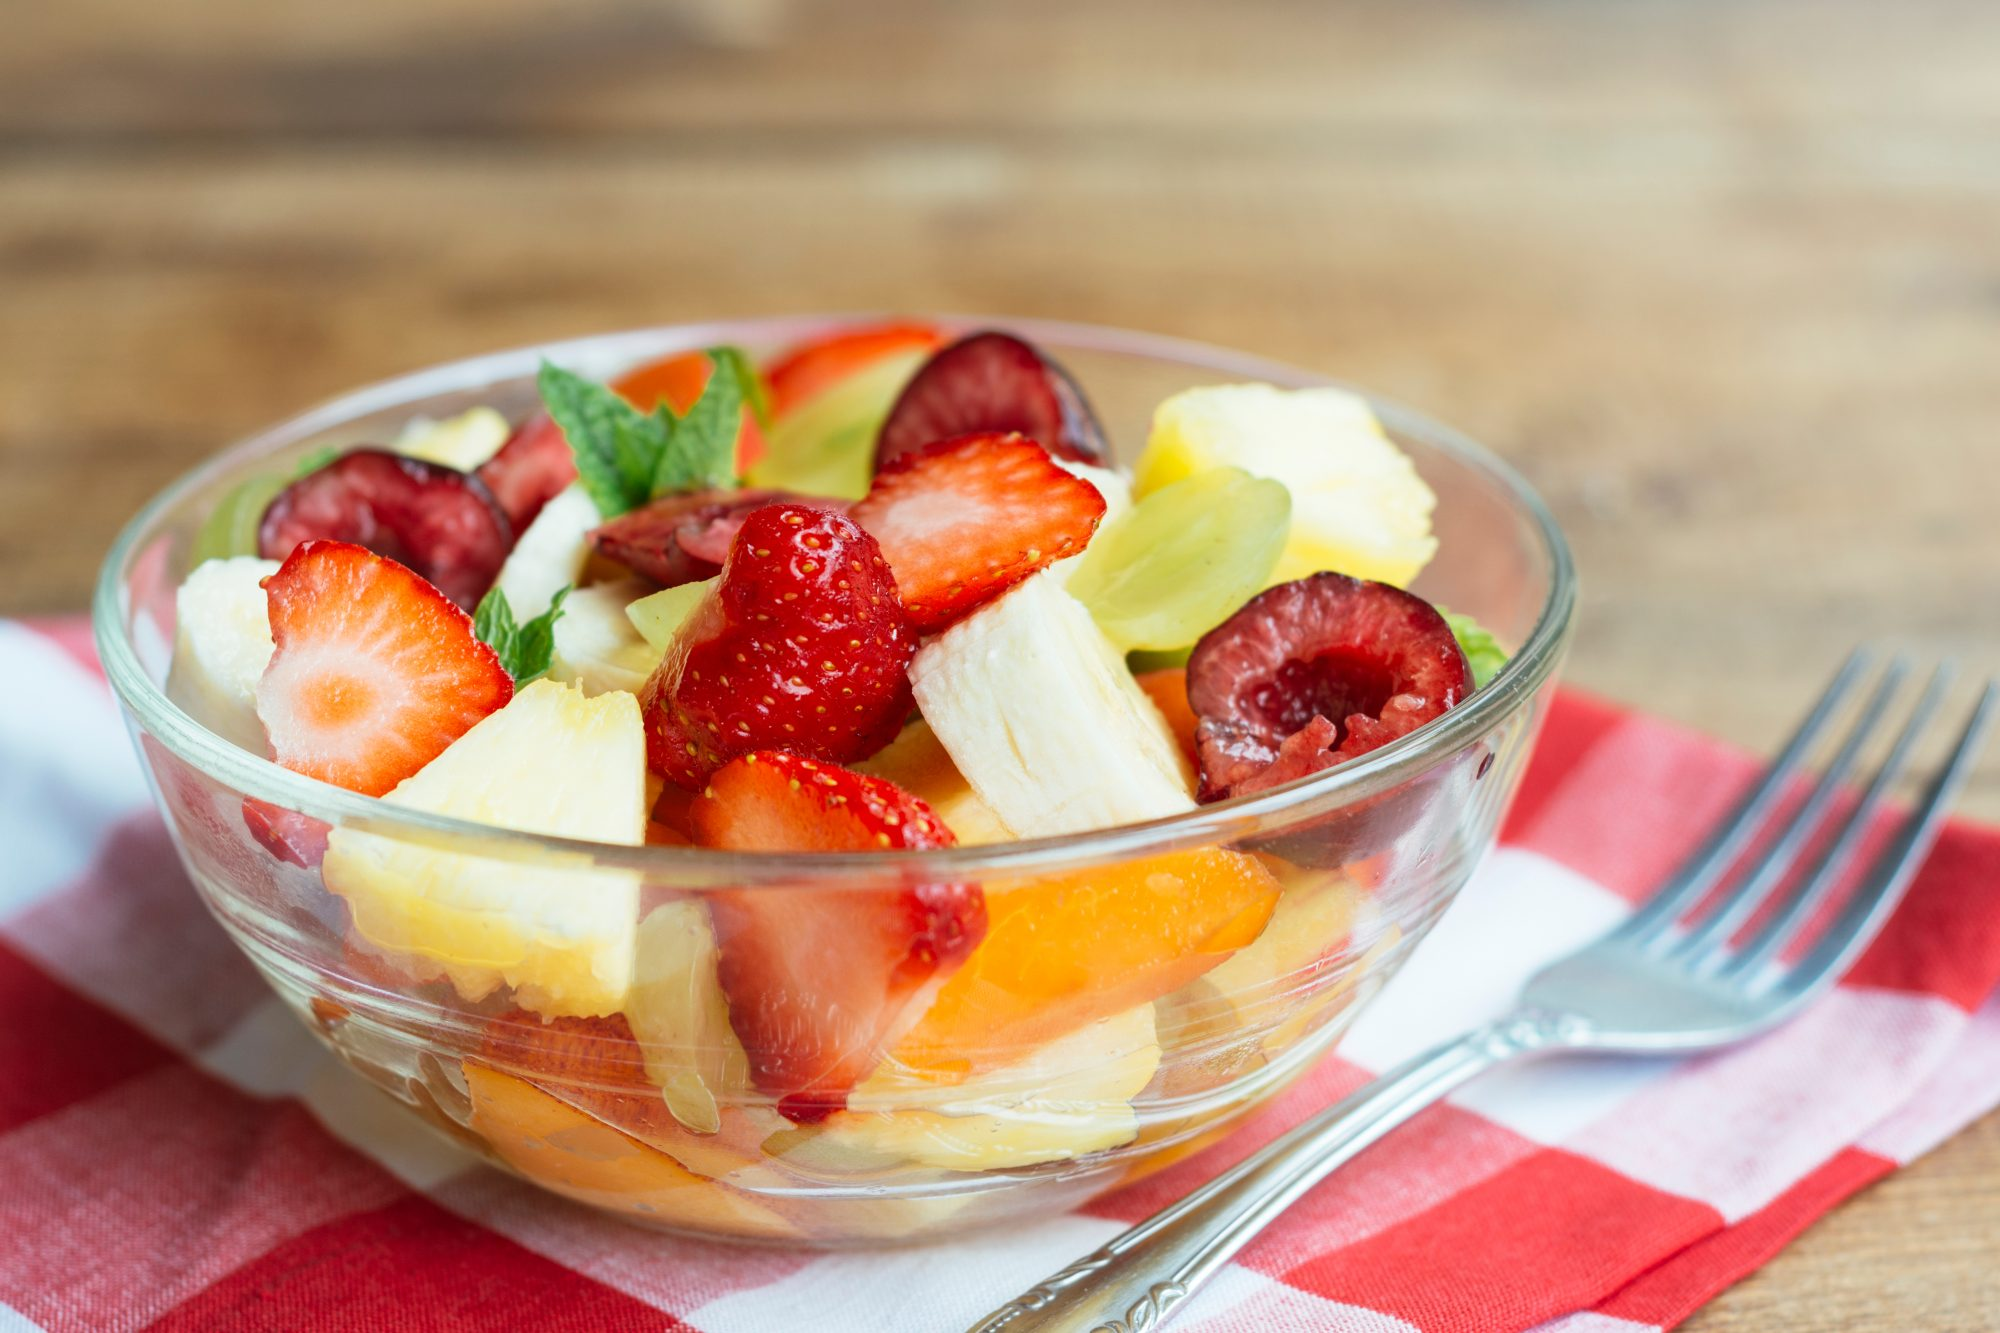 Close-Up Of Fruit Salad On Table